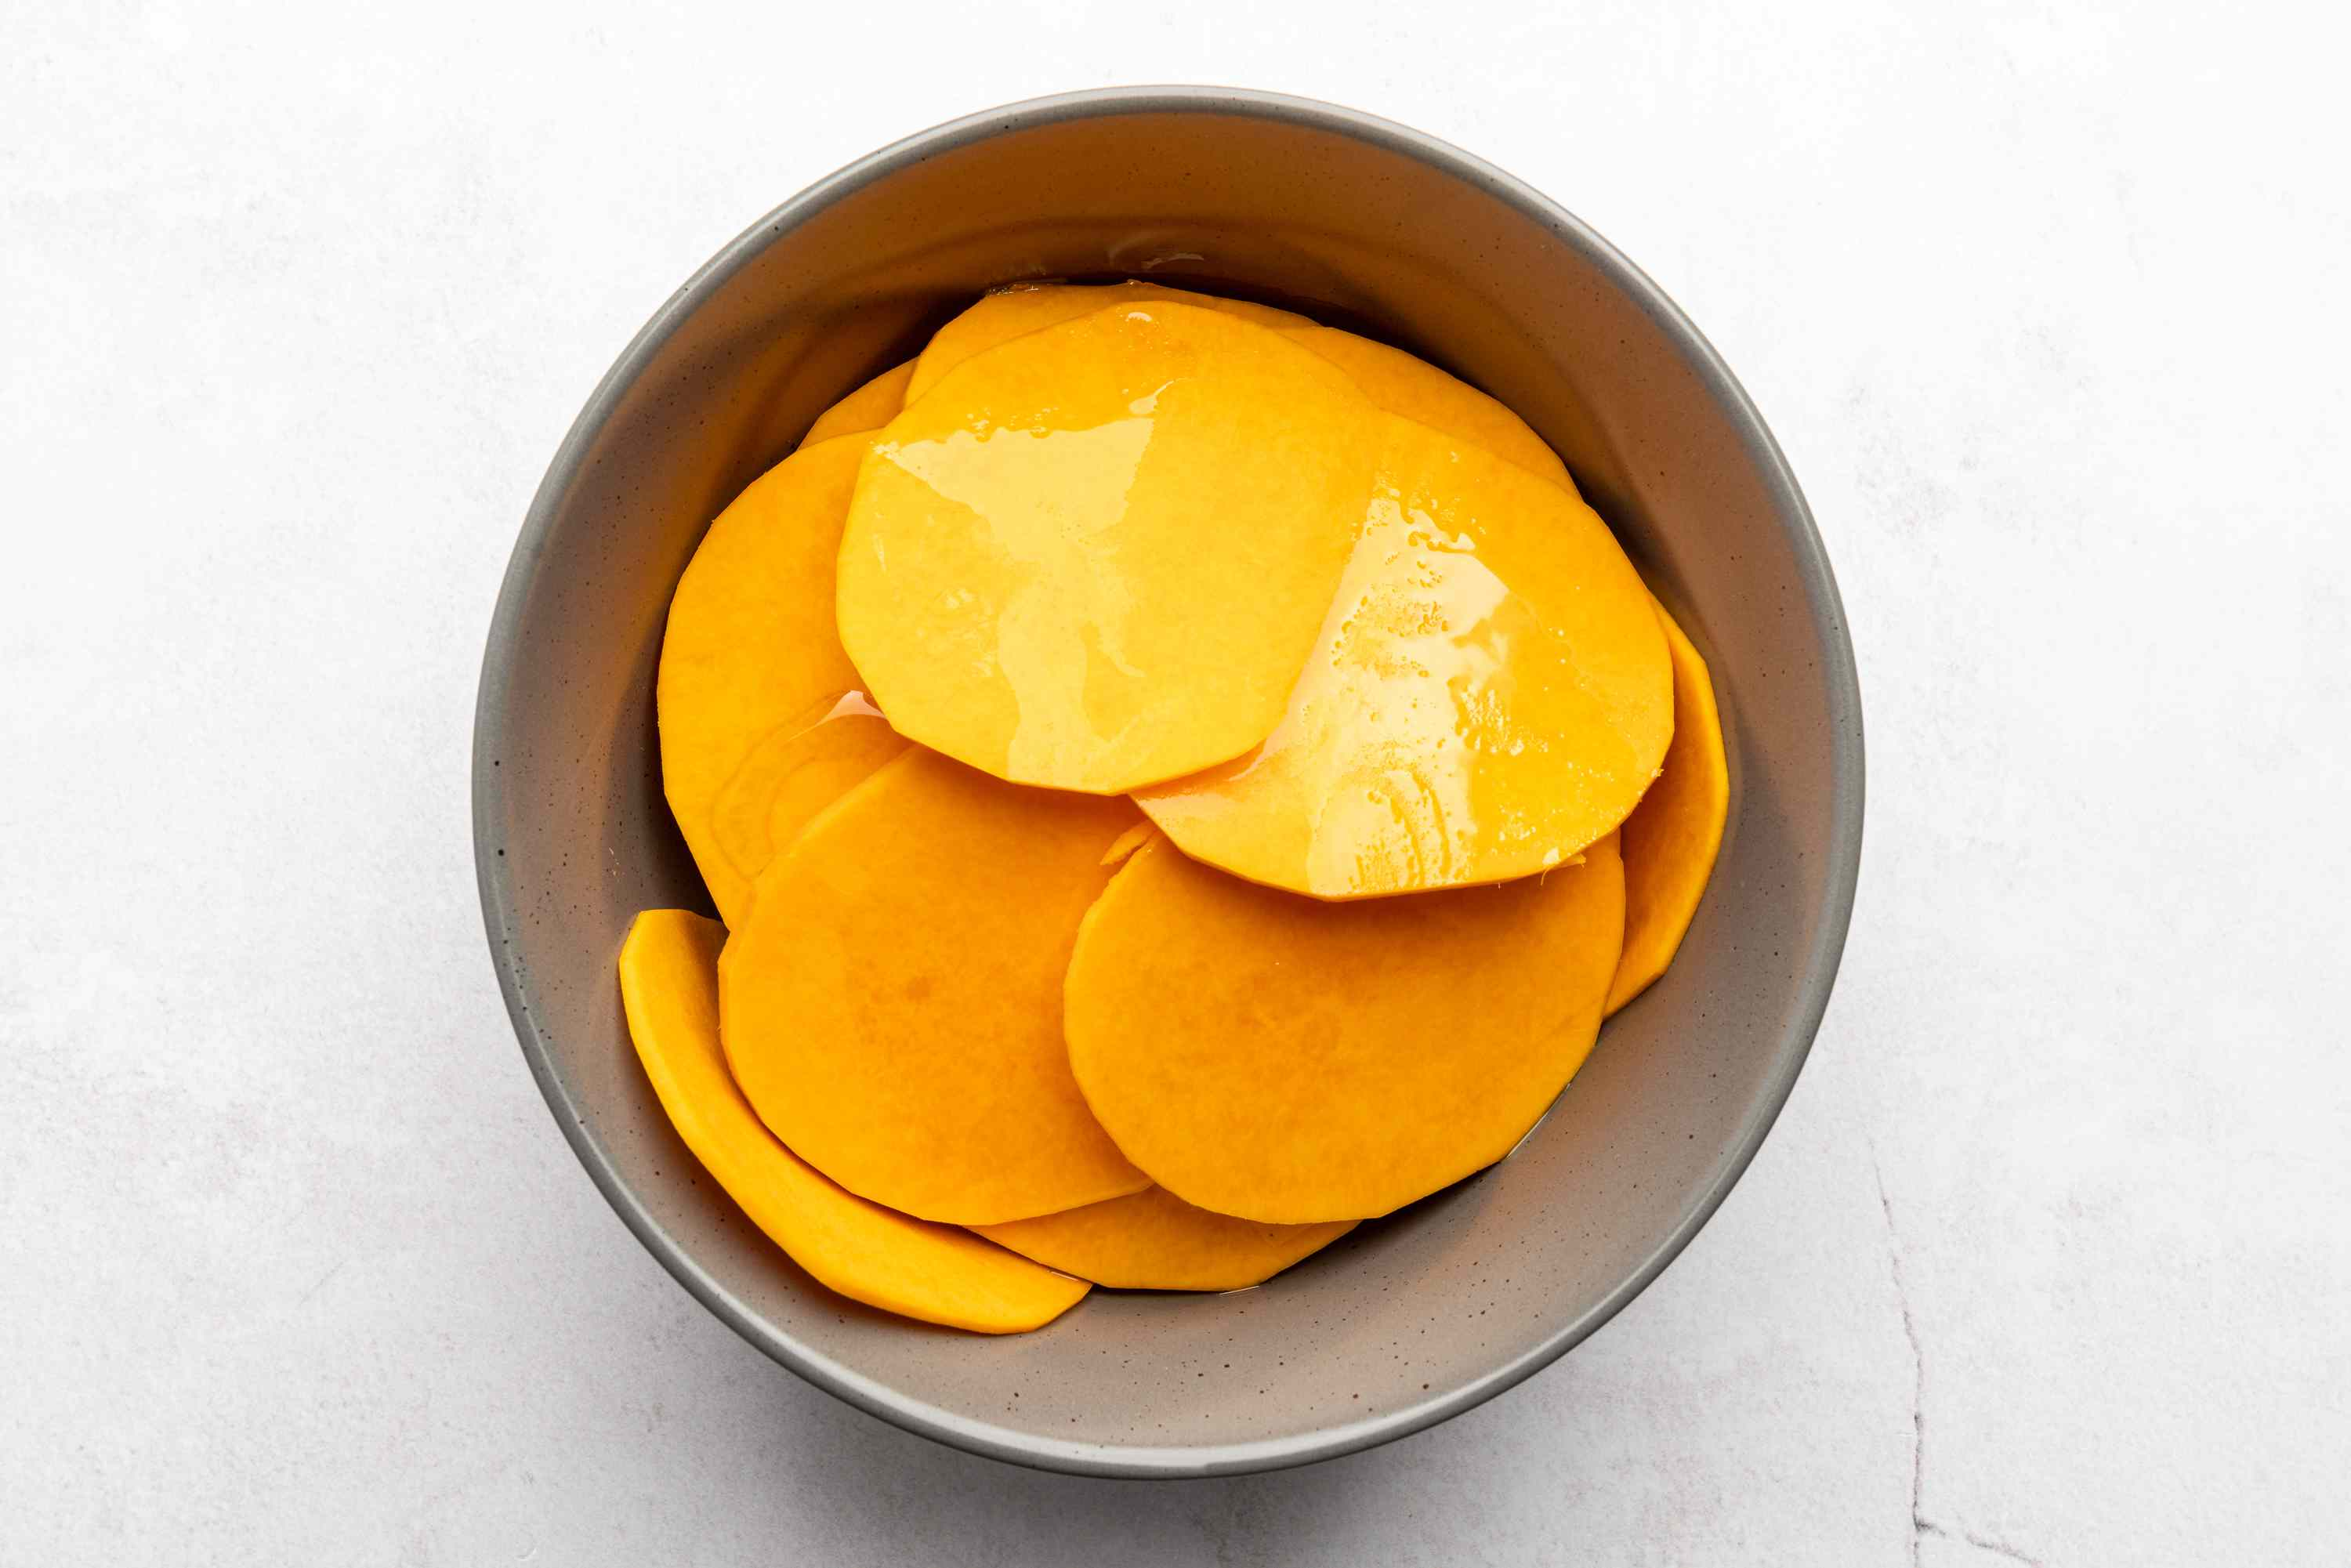 squash slices and oil in a bowl